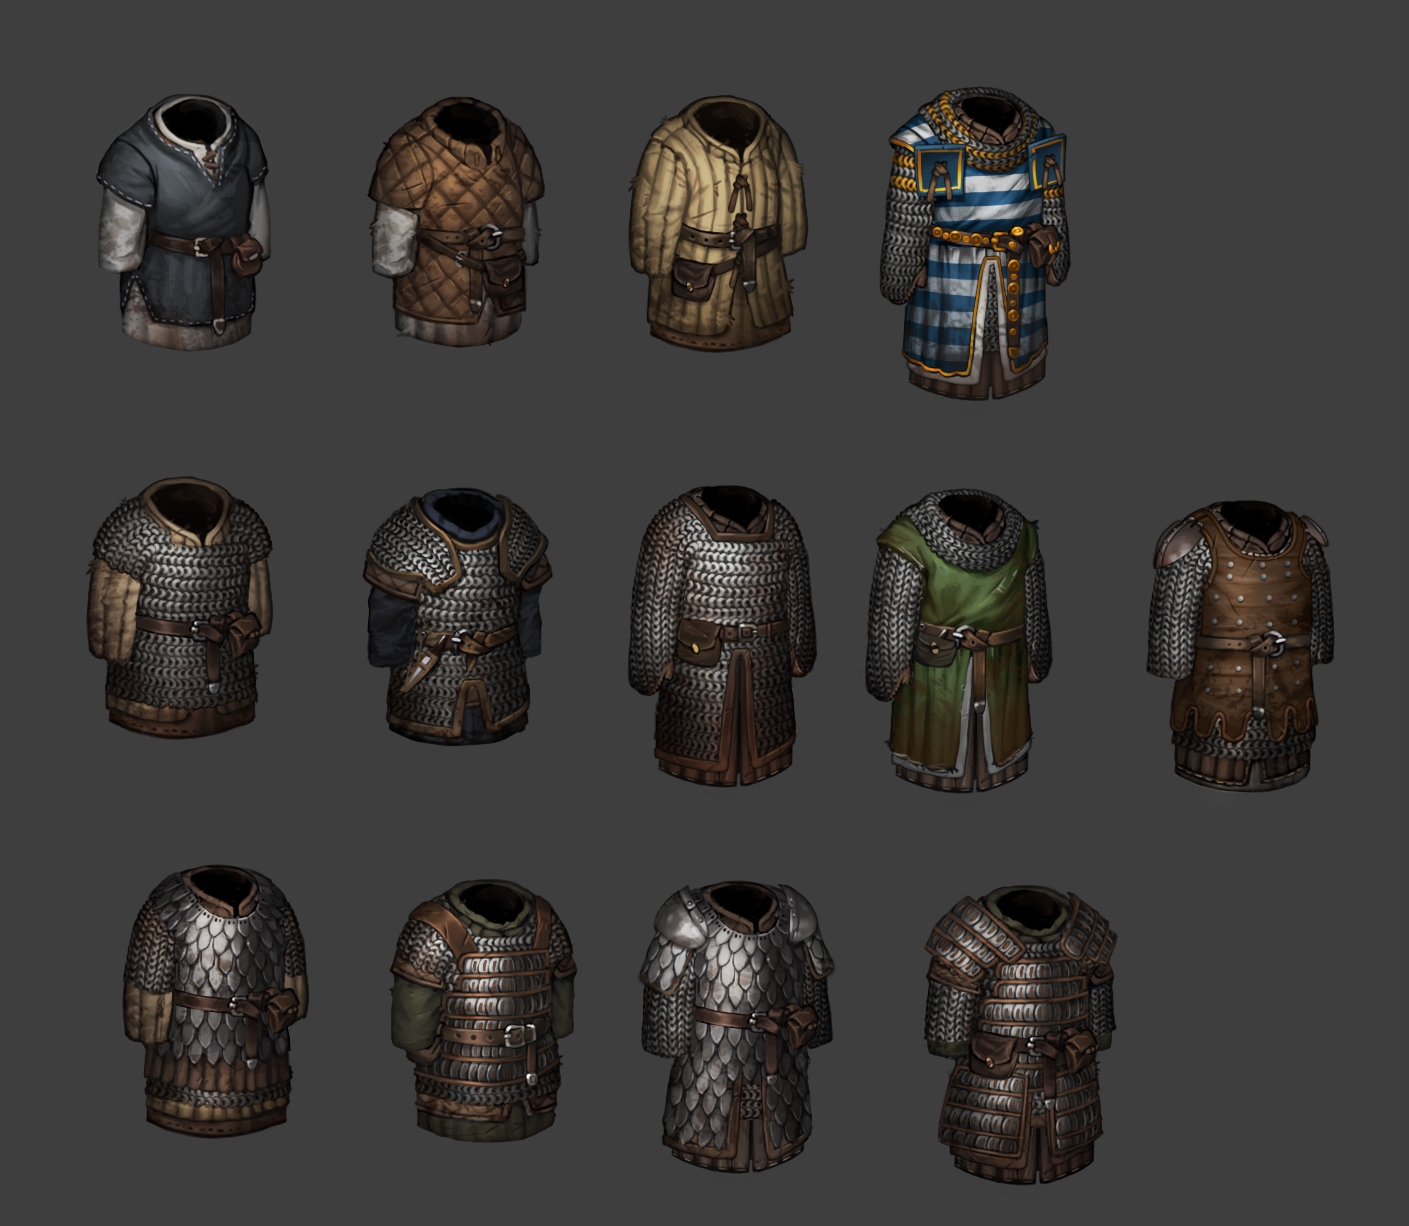 Armor Overview